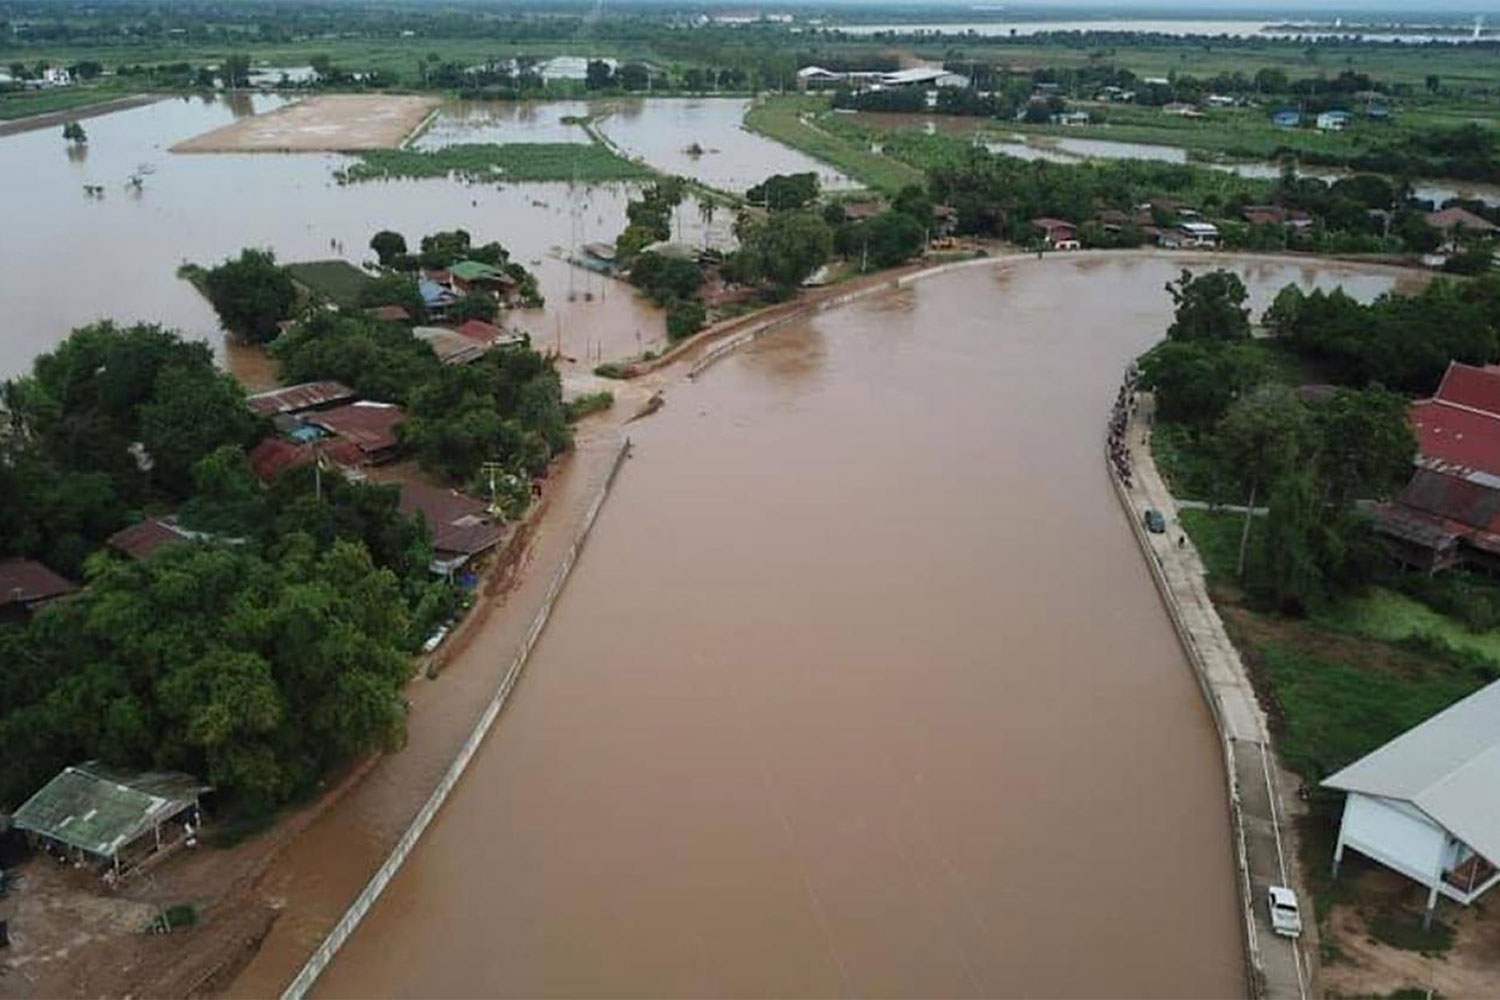 A view of flooding caused by a broken dyke along the Yom River in Sukhothai's Muang district. (Photo: Royal Irrigation Department)